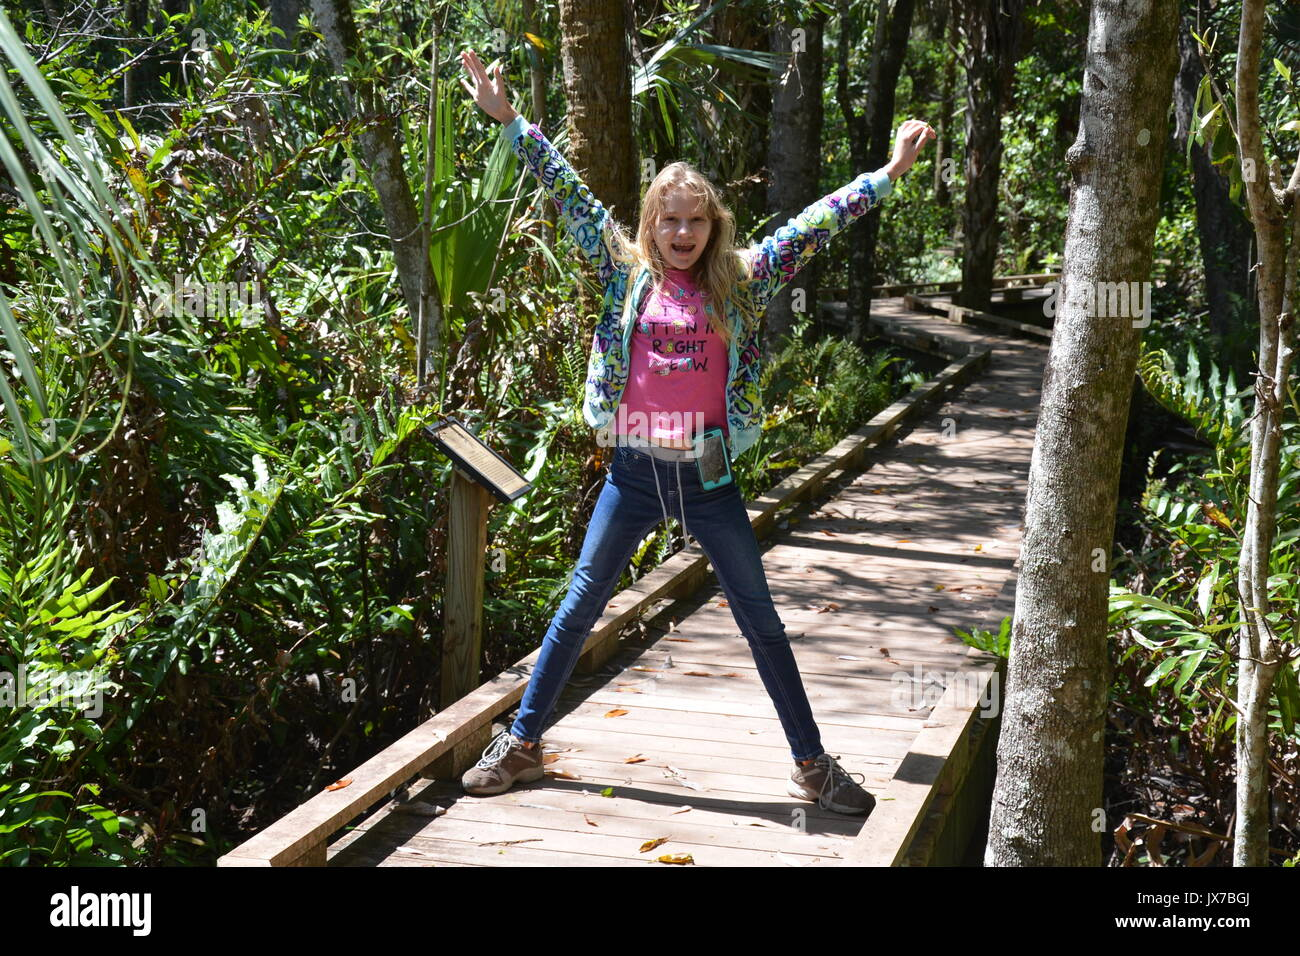 Young female acting silly on a boardwalk through the woods. Stock Photo